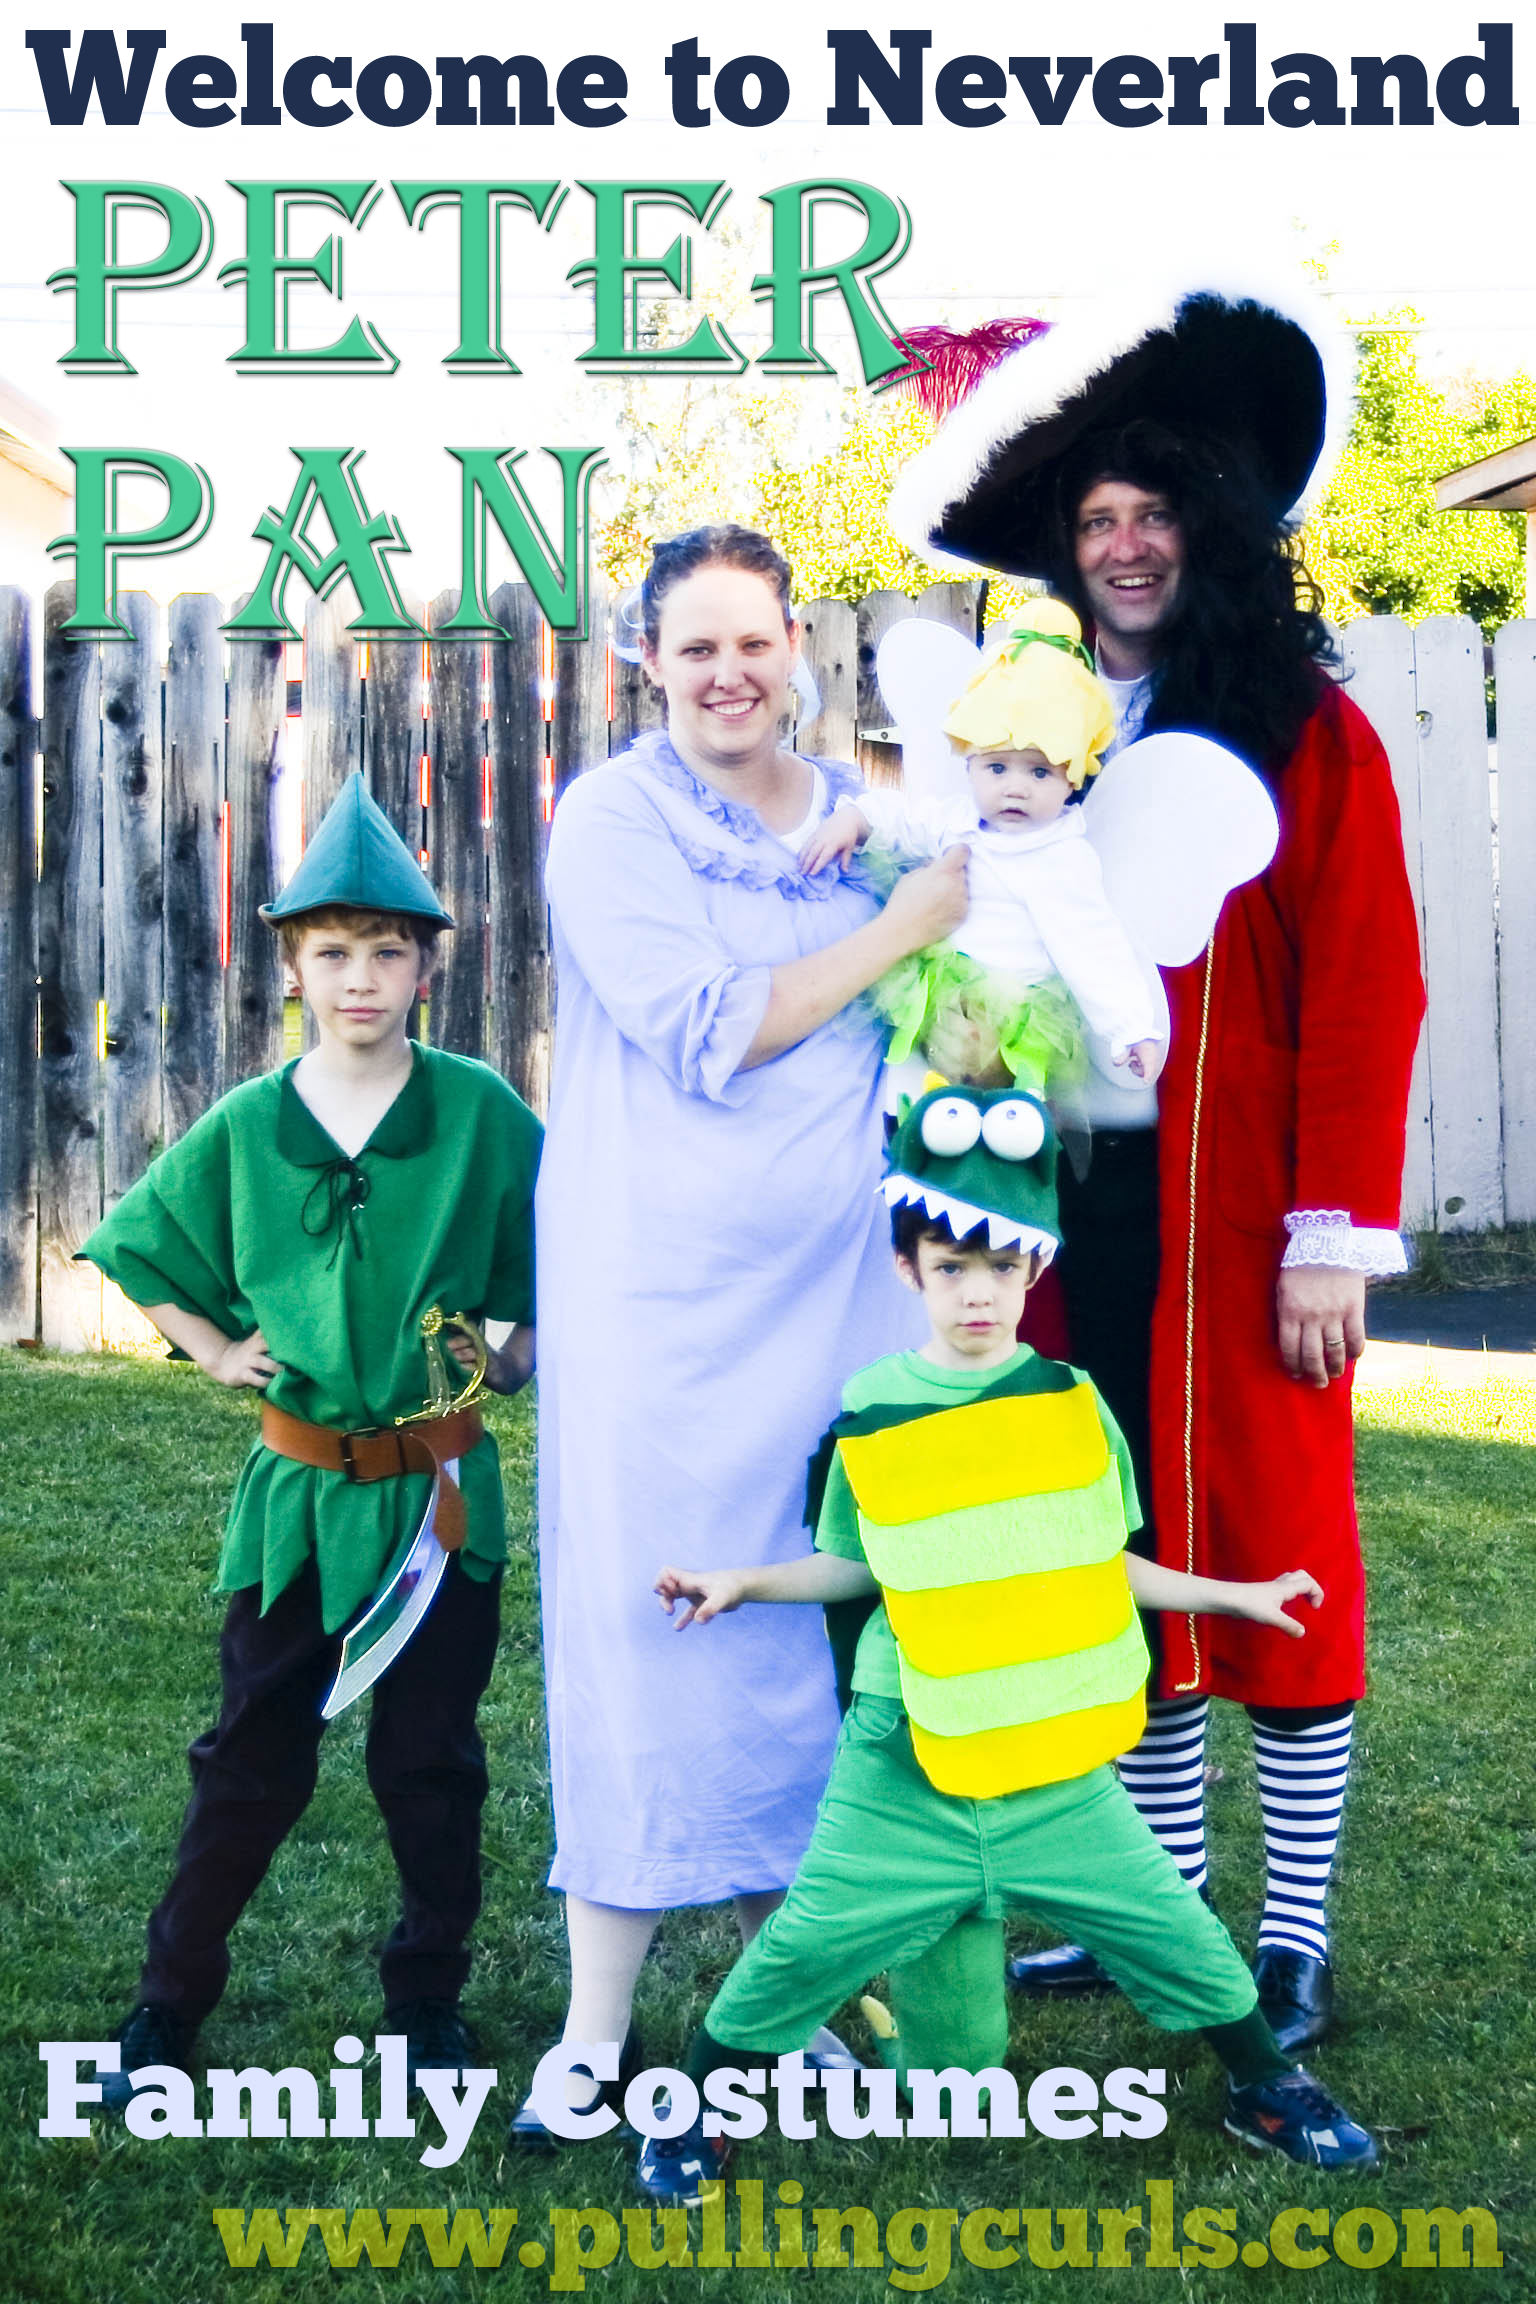 Peter Pan Family Costumes allows a lot of different and fun characters for each member of your family! #HalloweenCostumes #PeterPan